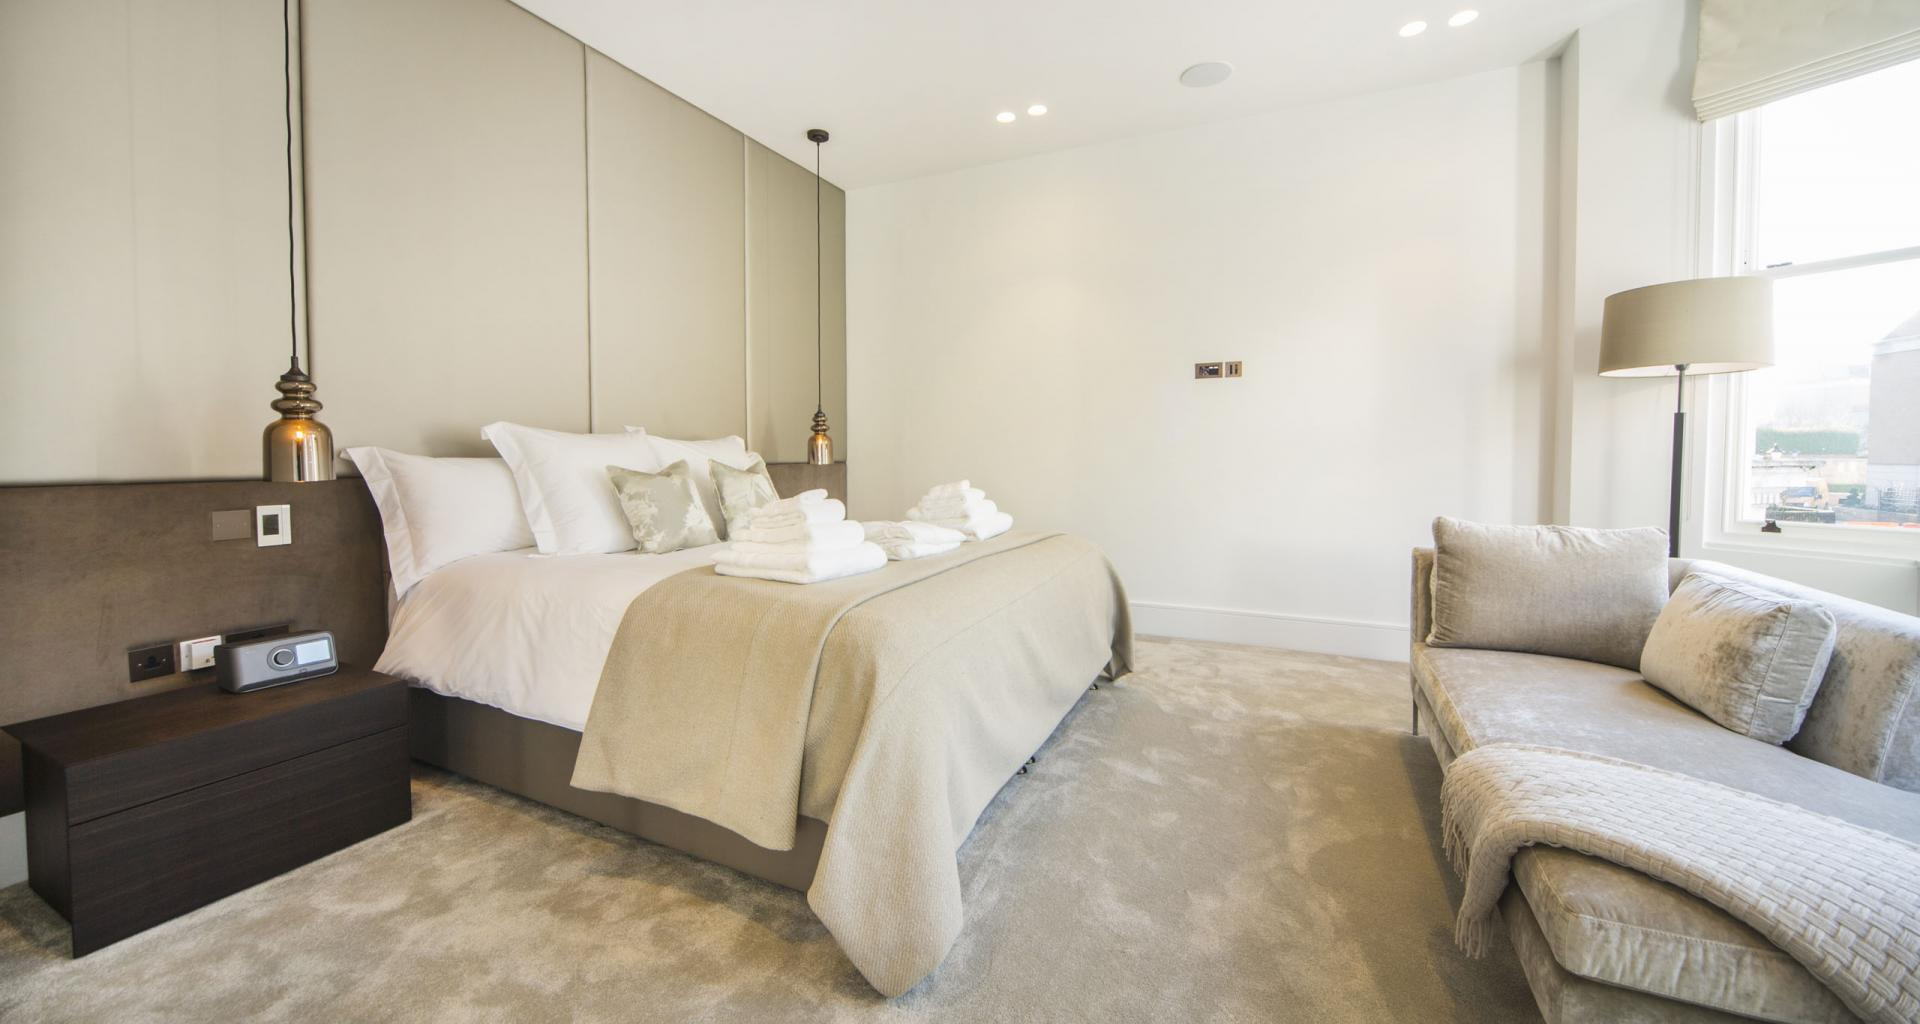 Bedroom at 21 Campden Hill Garden House, Notting Hill, London - Citybase Apartments